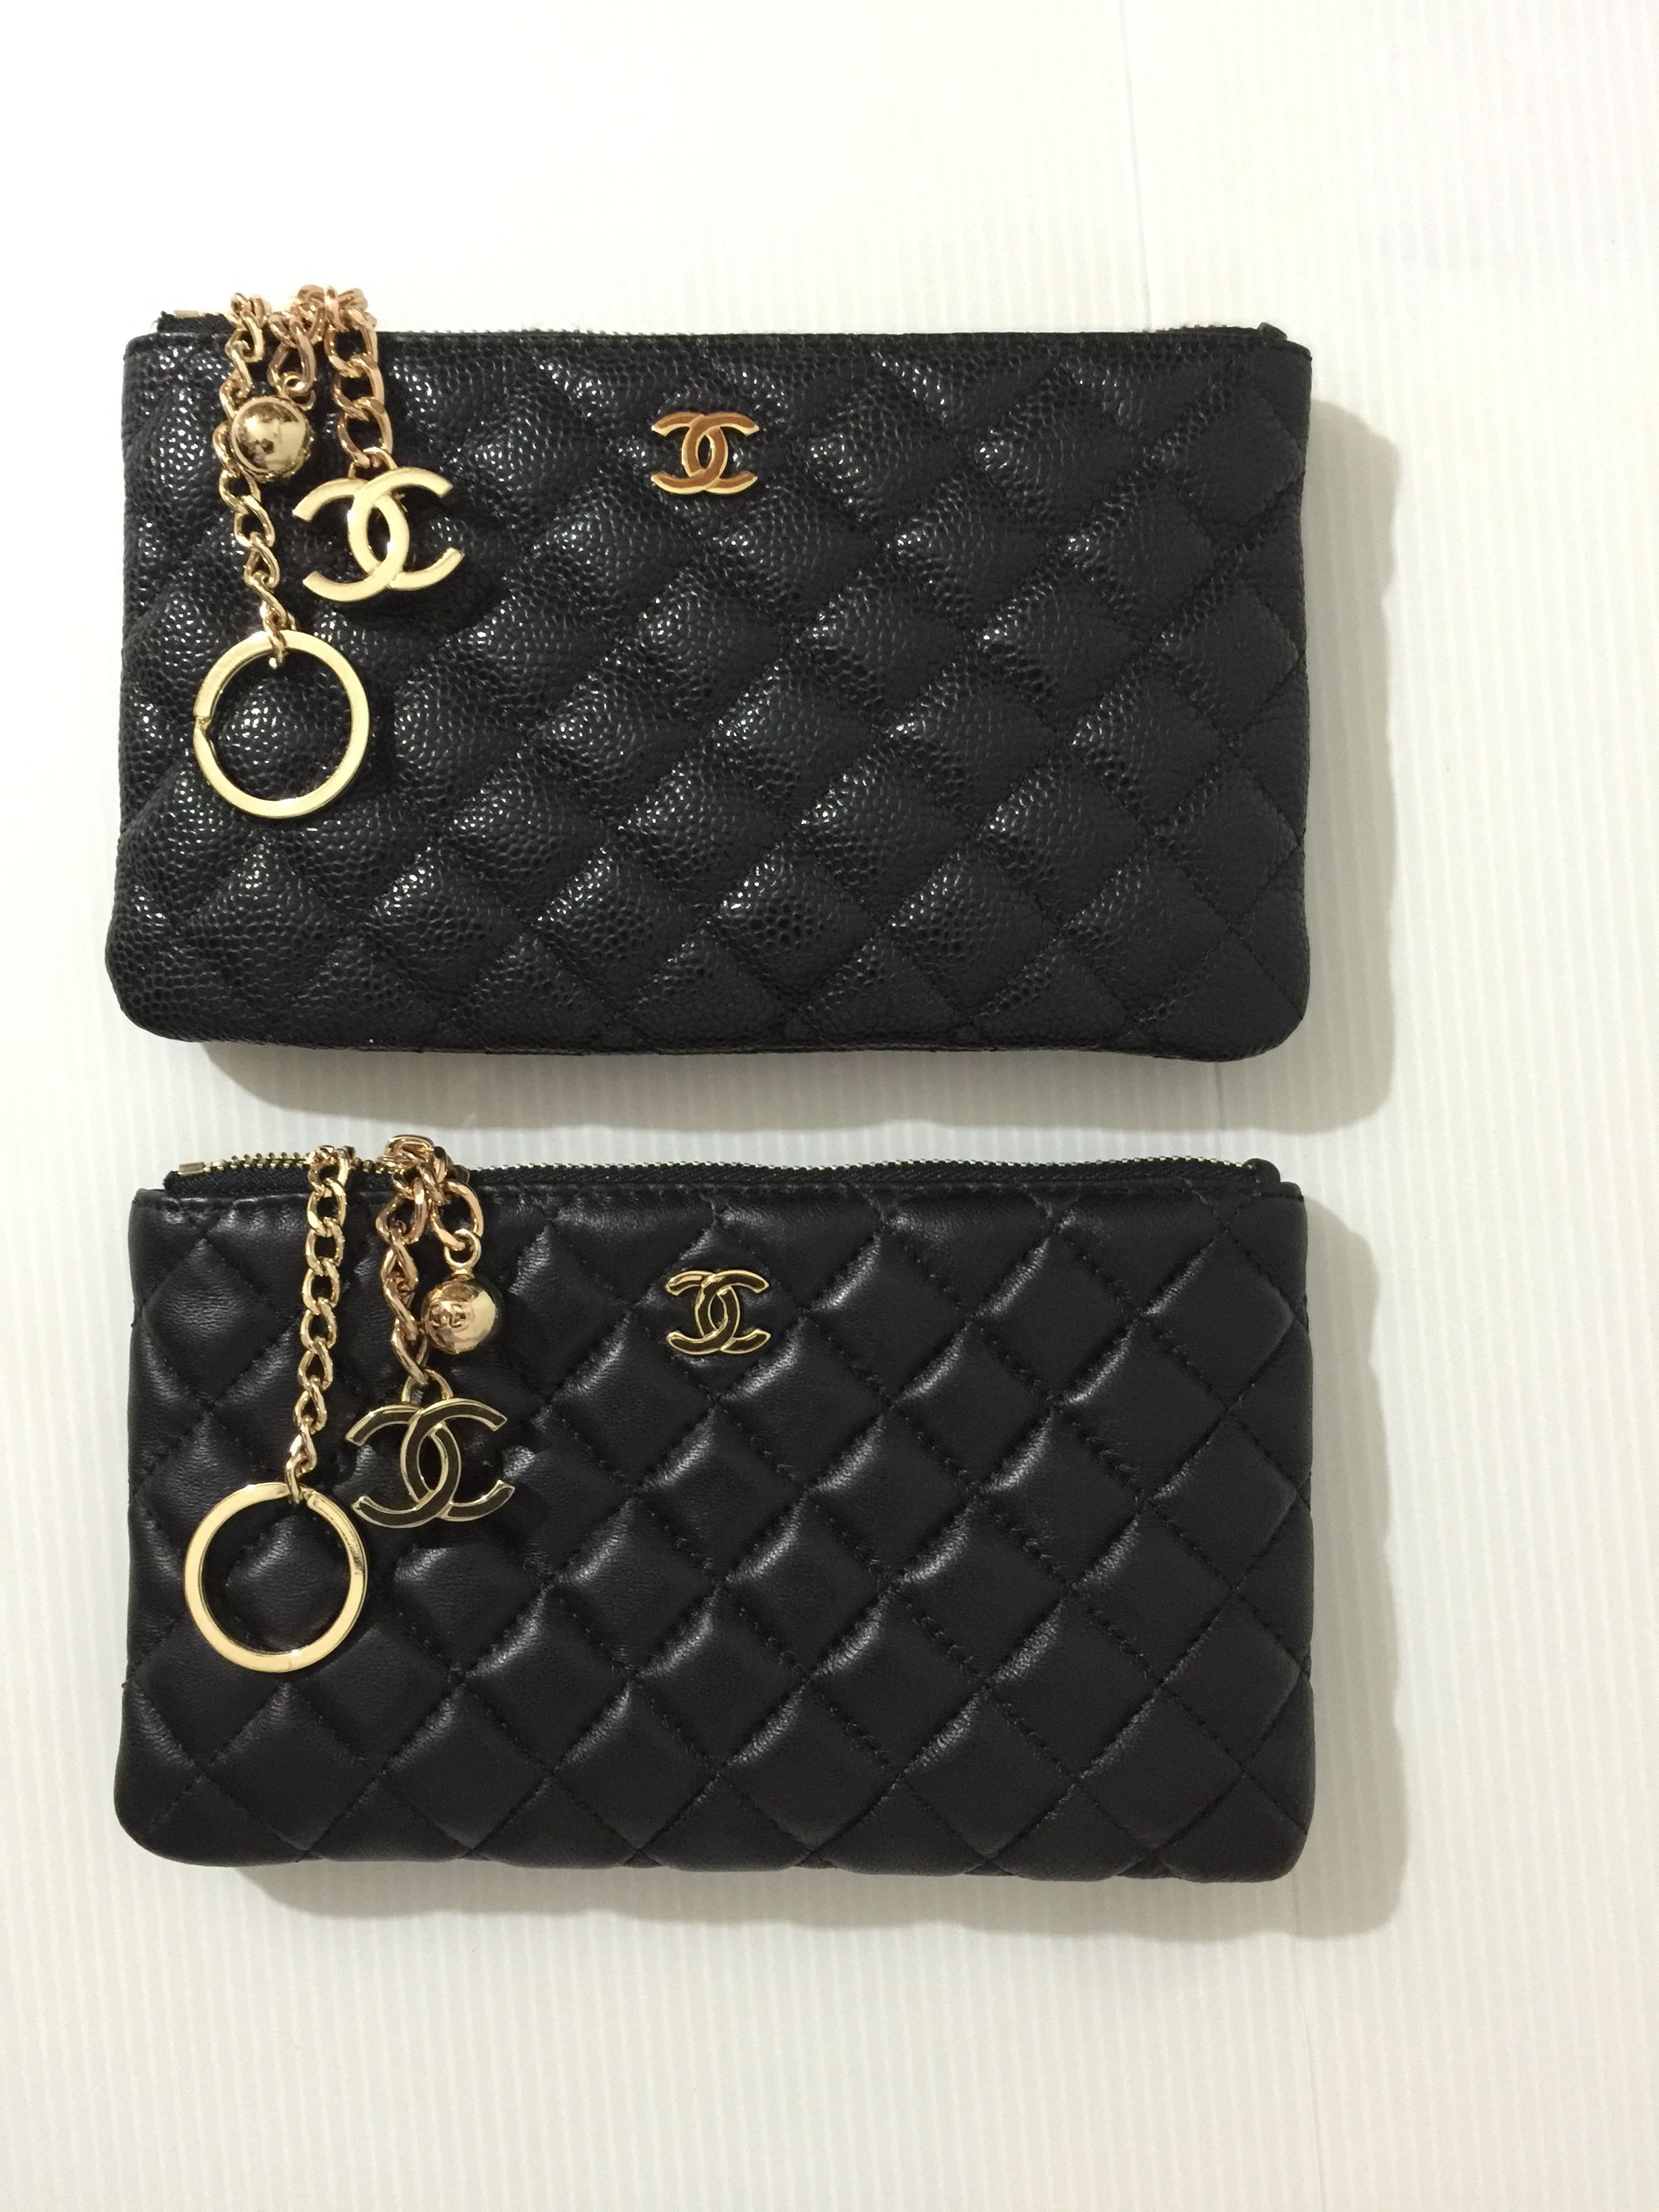 84b87a00fc5b4d Chanel Caviar / Lambskin Silver or Gold Hardware VIP Gift Pouch / Purse,  Everything Else on Carousell